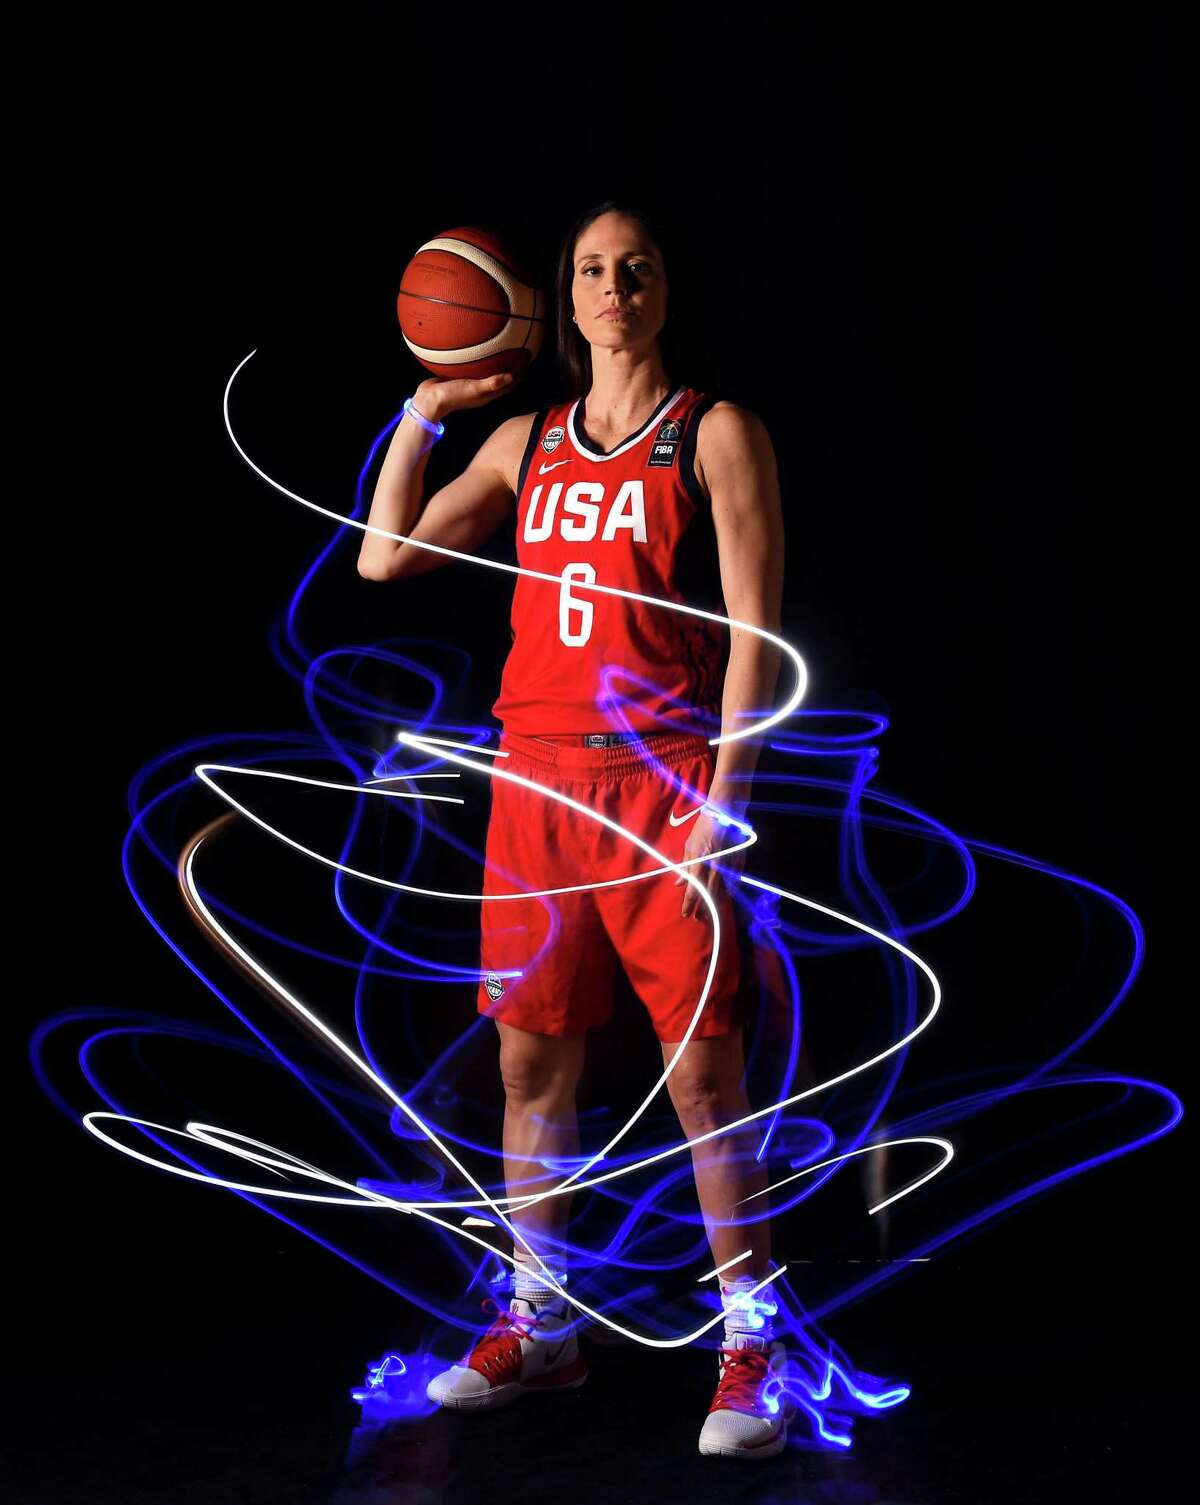 WEST HOLLYWOOD, CALIFORNIA - NOVEMBER 21: Basketball player Sue Bird poses for a portrait during the Team USA Tokyo 2020 Olympics shoot on November 21, 2019 in West Hollywood, California. (Photo by Harry How/Getty Images)